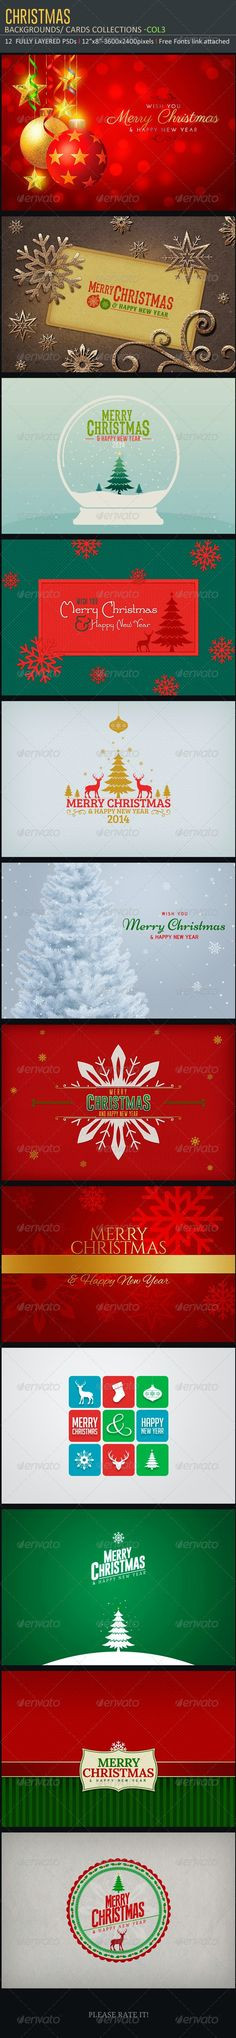 Christmas Backgrounds-Cards -Col3 by creativeartx | GraphicRiver